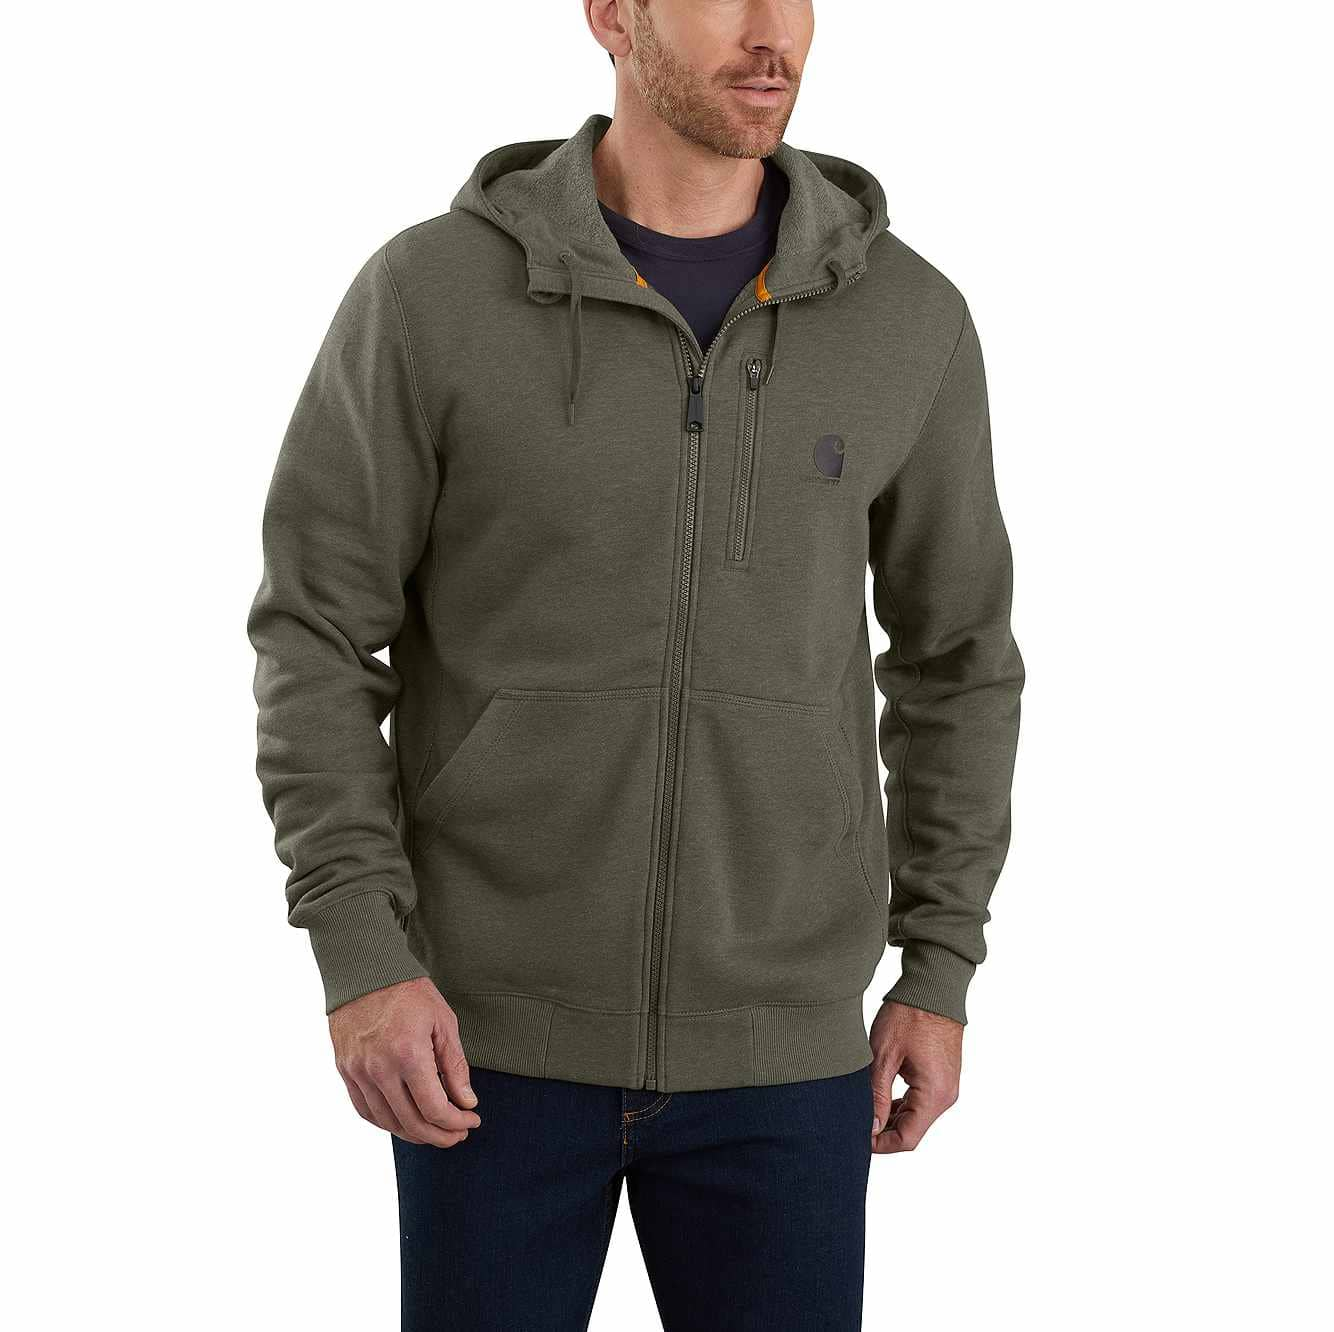 Picture of Carhartt Force® Delmont Graphic Full-Zip Hooded Sweatshirt in Moss Heather